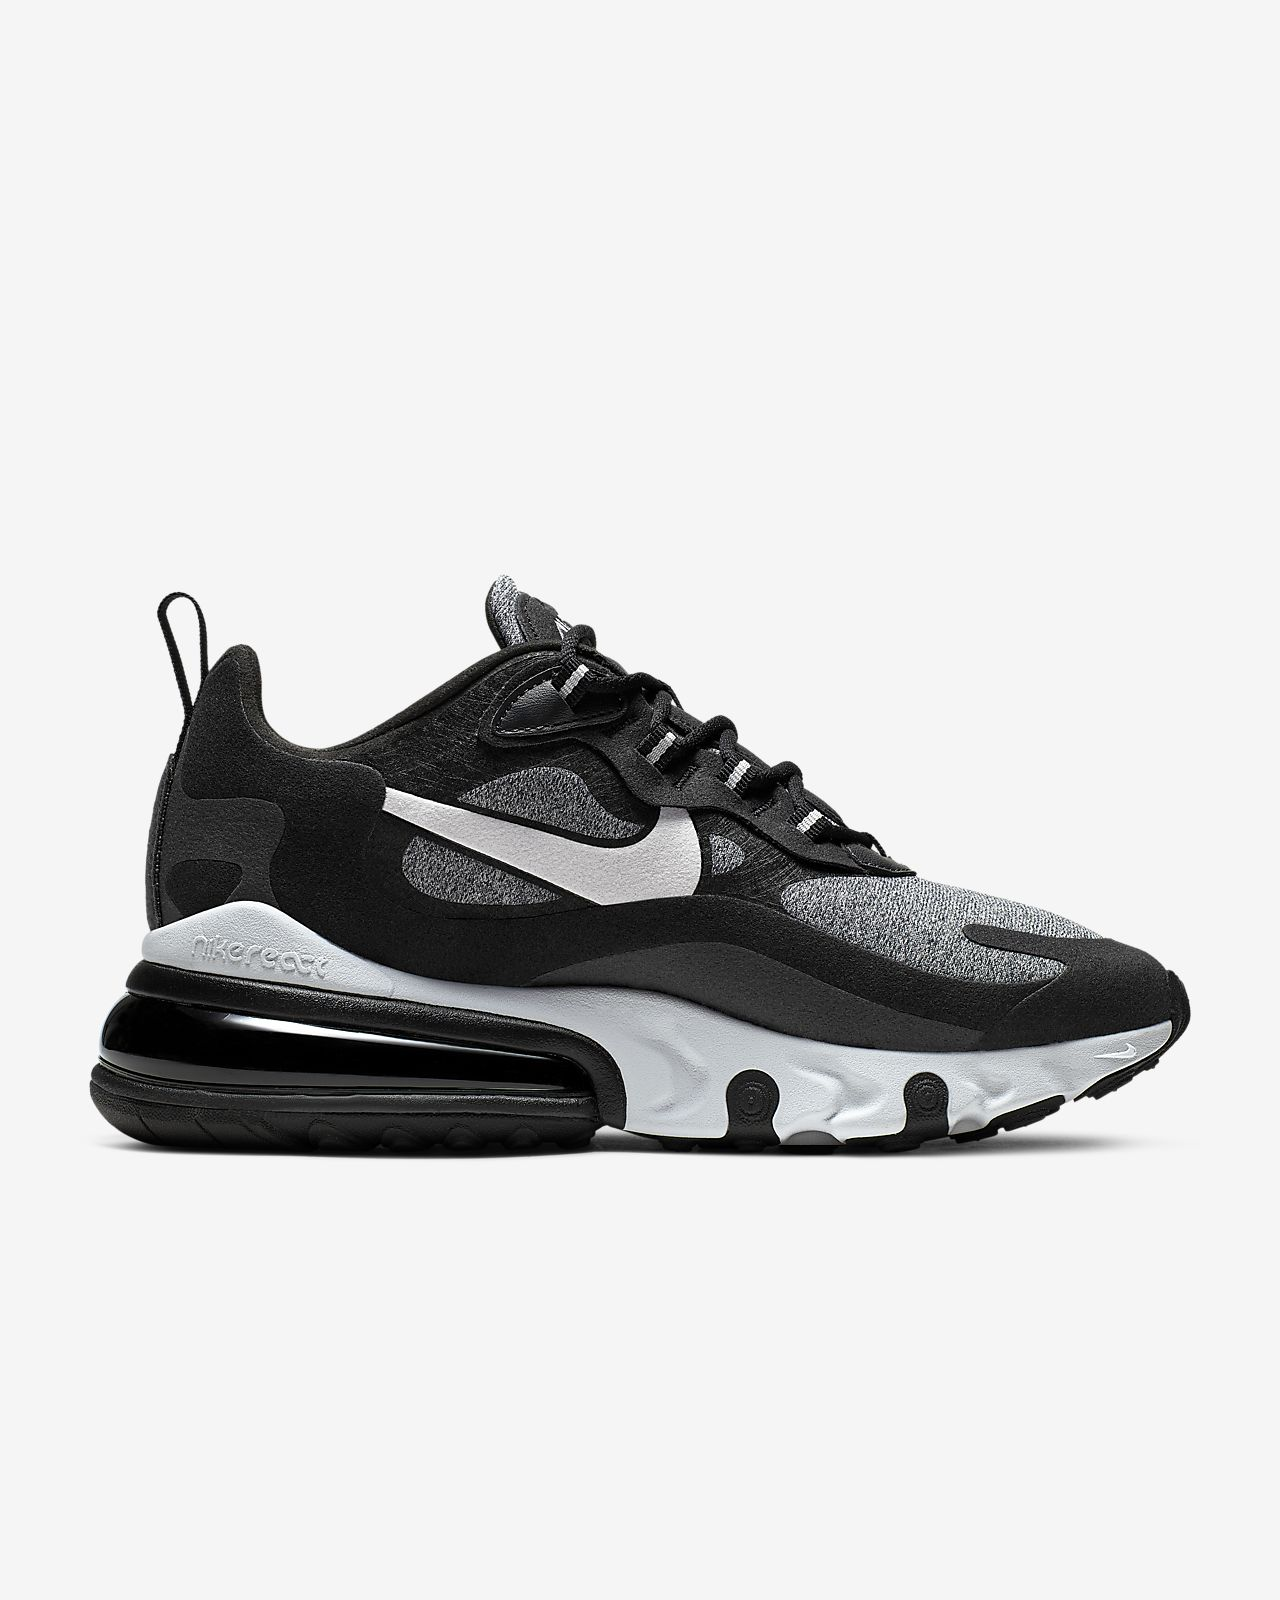 How to Spot FAKE Nike Air Max Shoes | Nike shoes air max